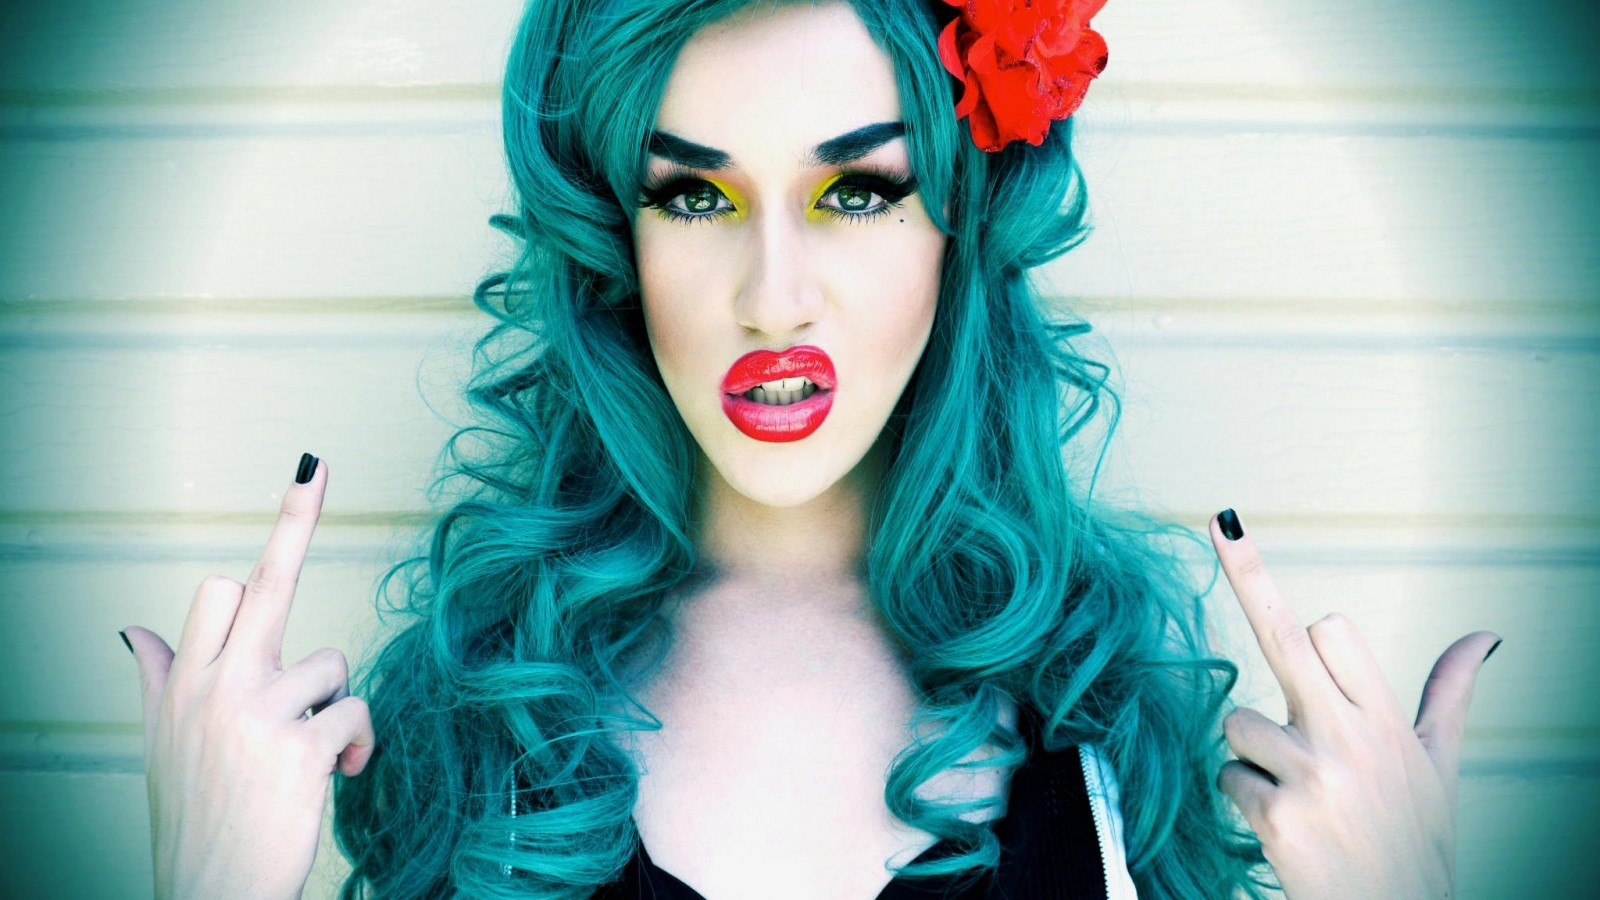 #16 by Cartoon Dandy: Adore Delano – Till Death Do Us Party